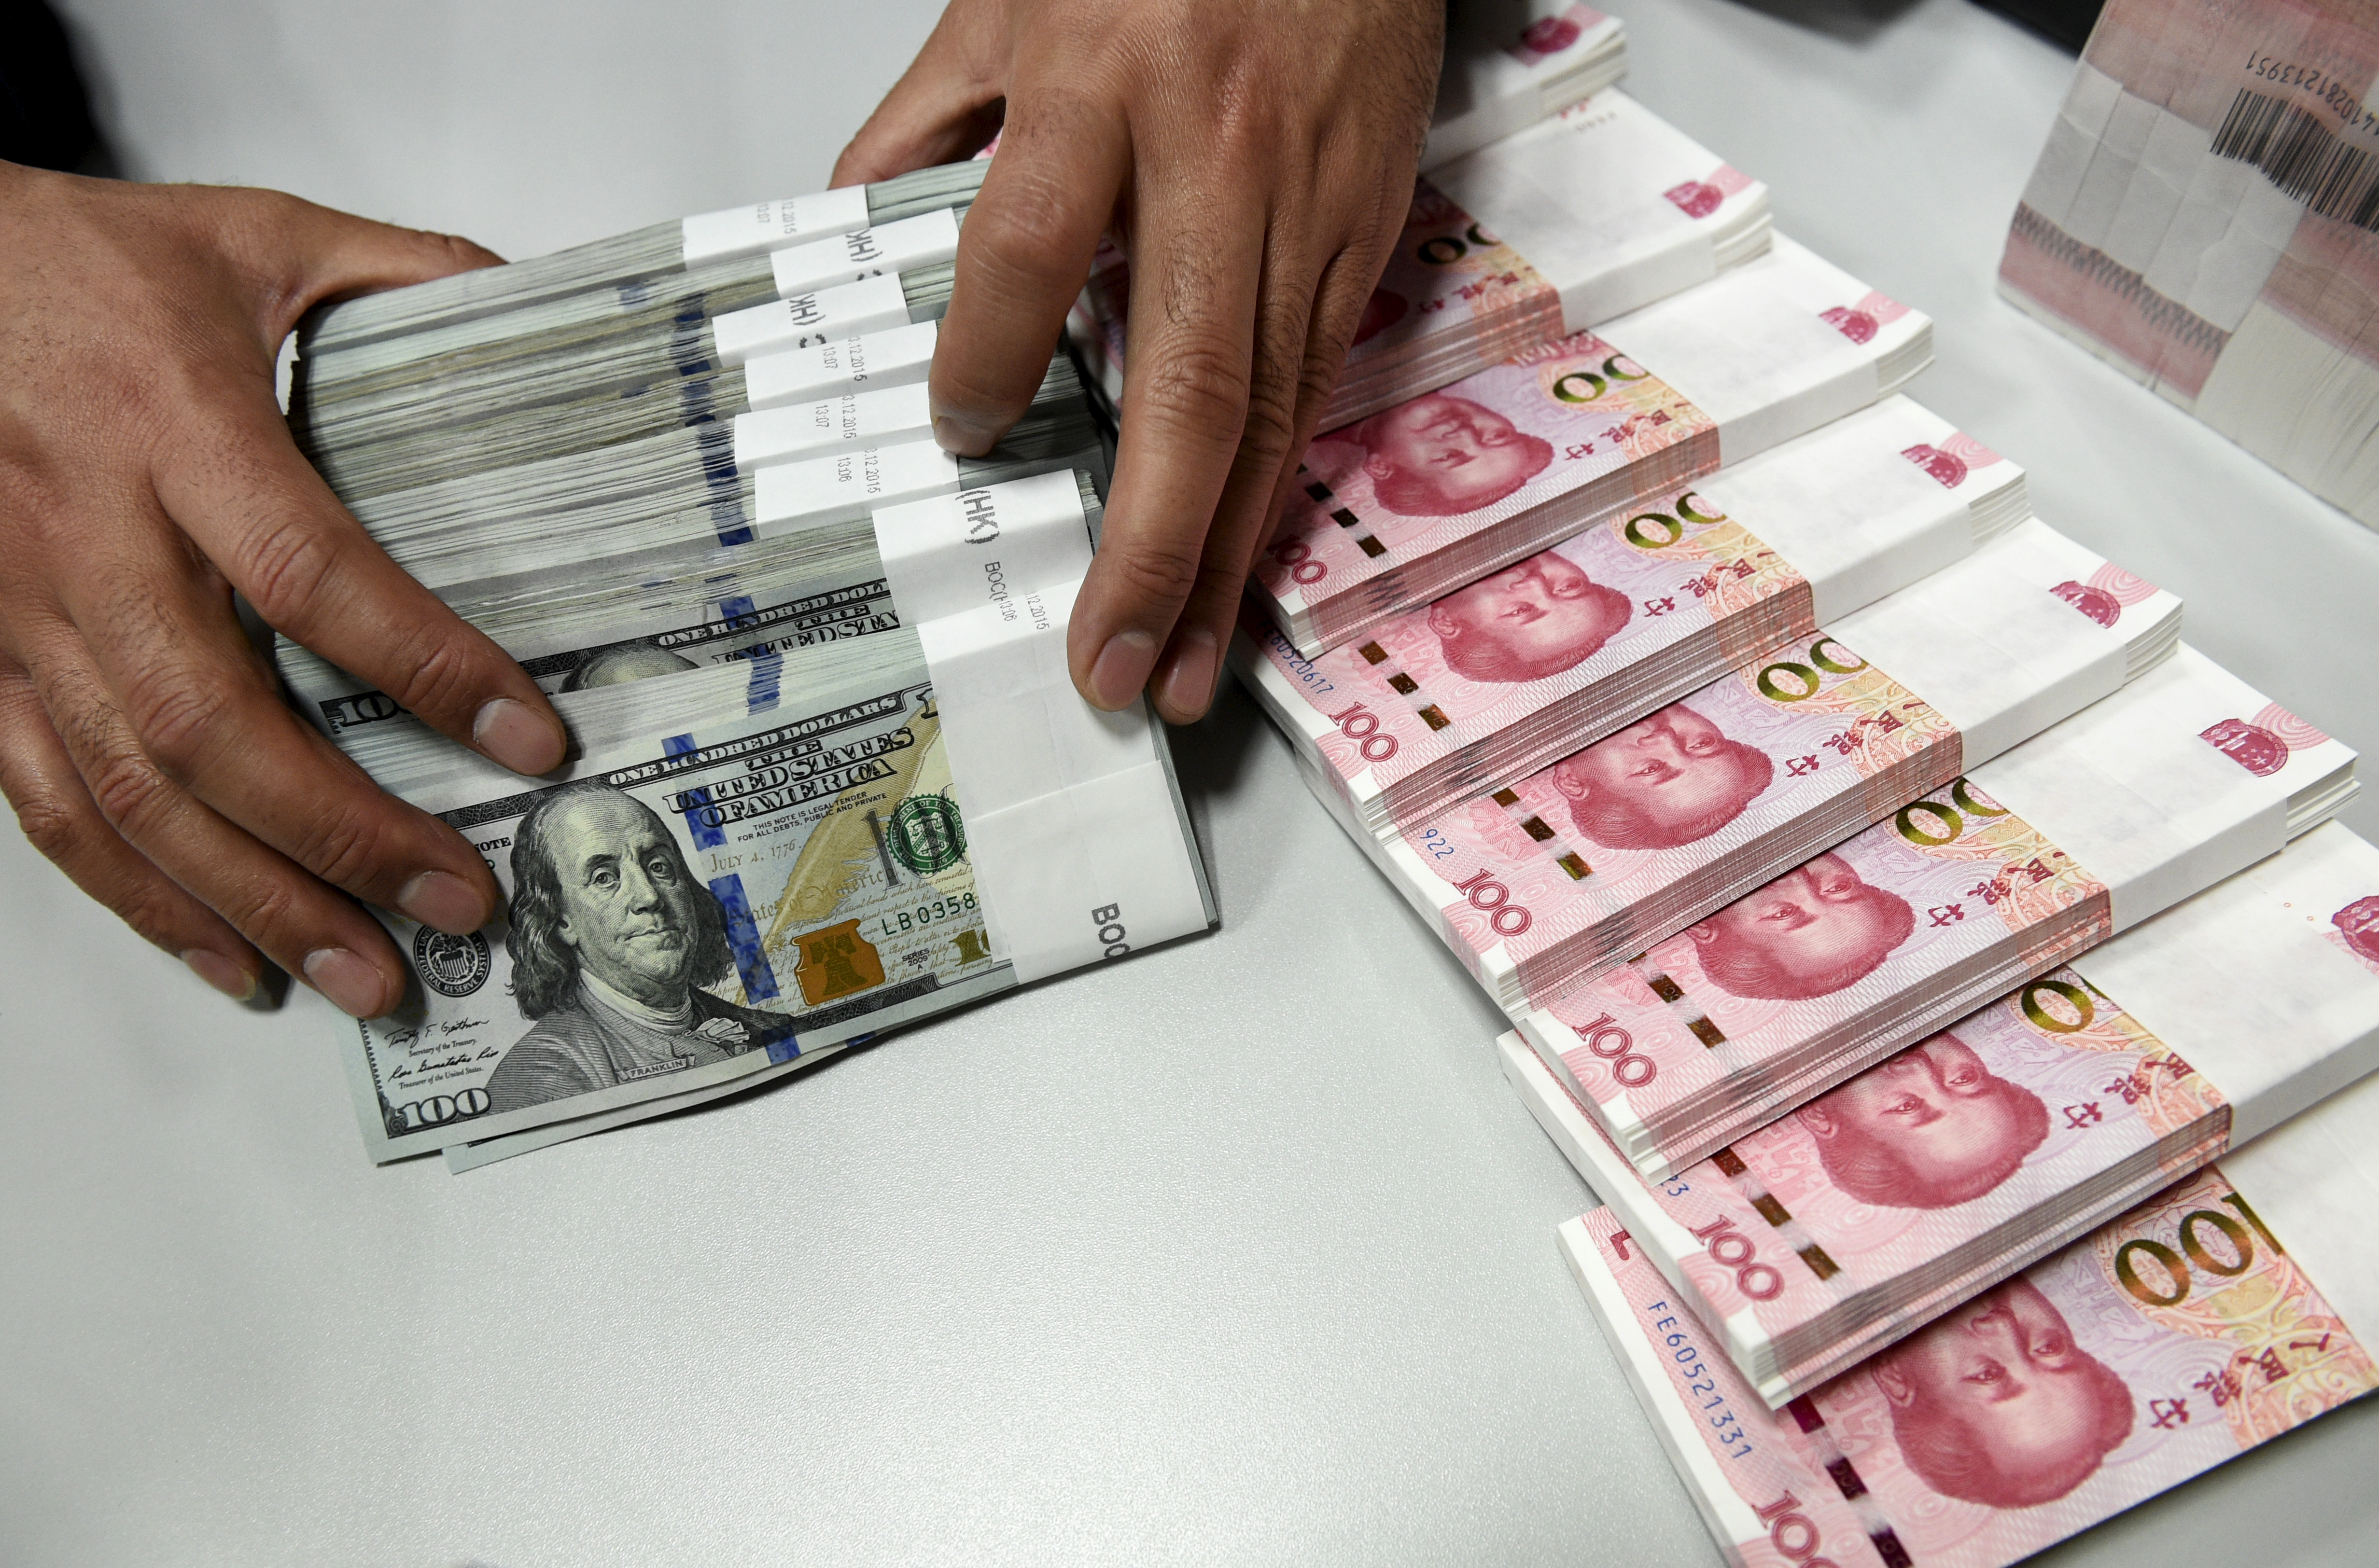 A clerk counts Chinese yuan and U.S. dollar banknotes at a branch of Bank of China in Taiyuan, China, Jan. 4, 2016. China's currency has been slipping in value since Donald Trump became president-elect.